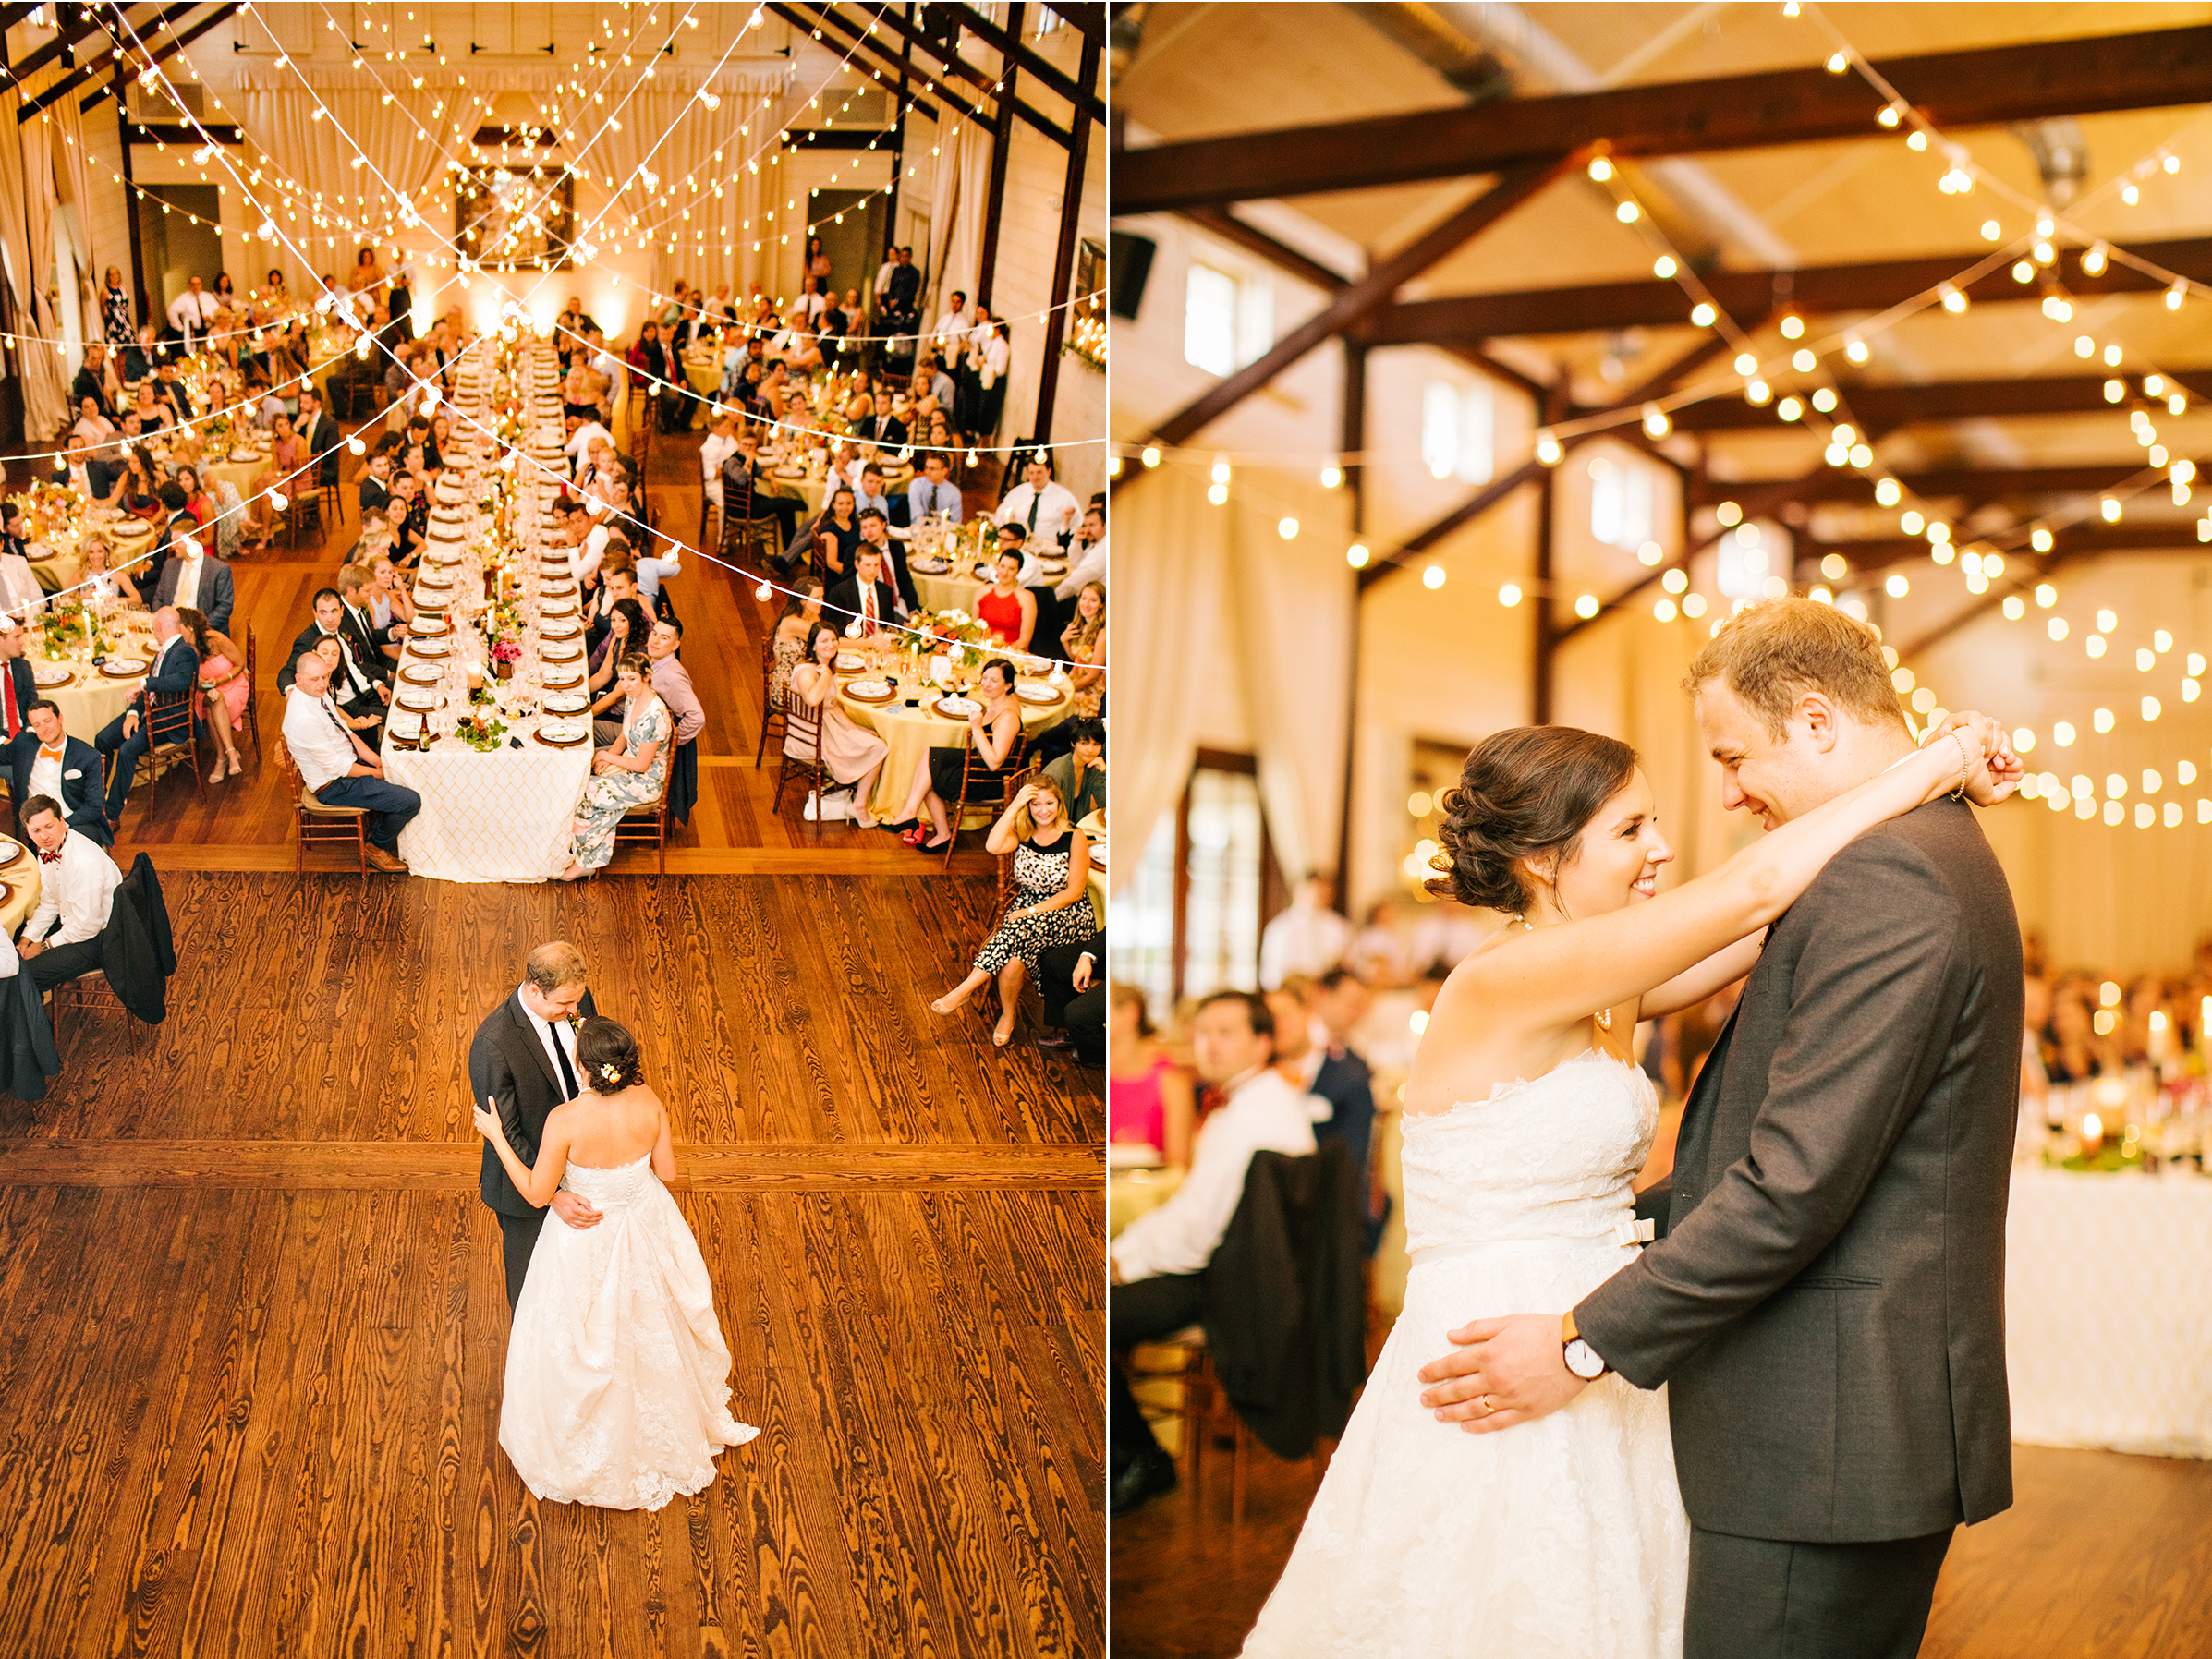 katie stoops photography-pippin hill-ashley baber weddings40.jpg